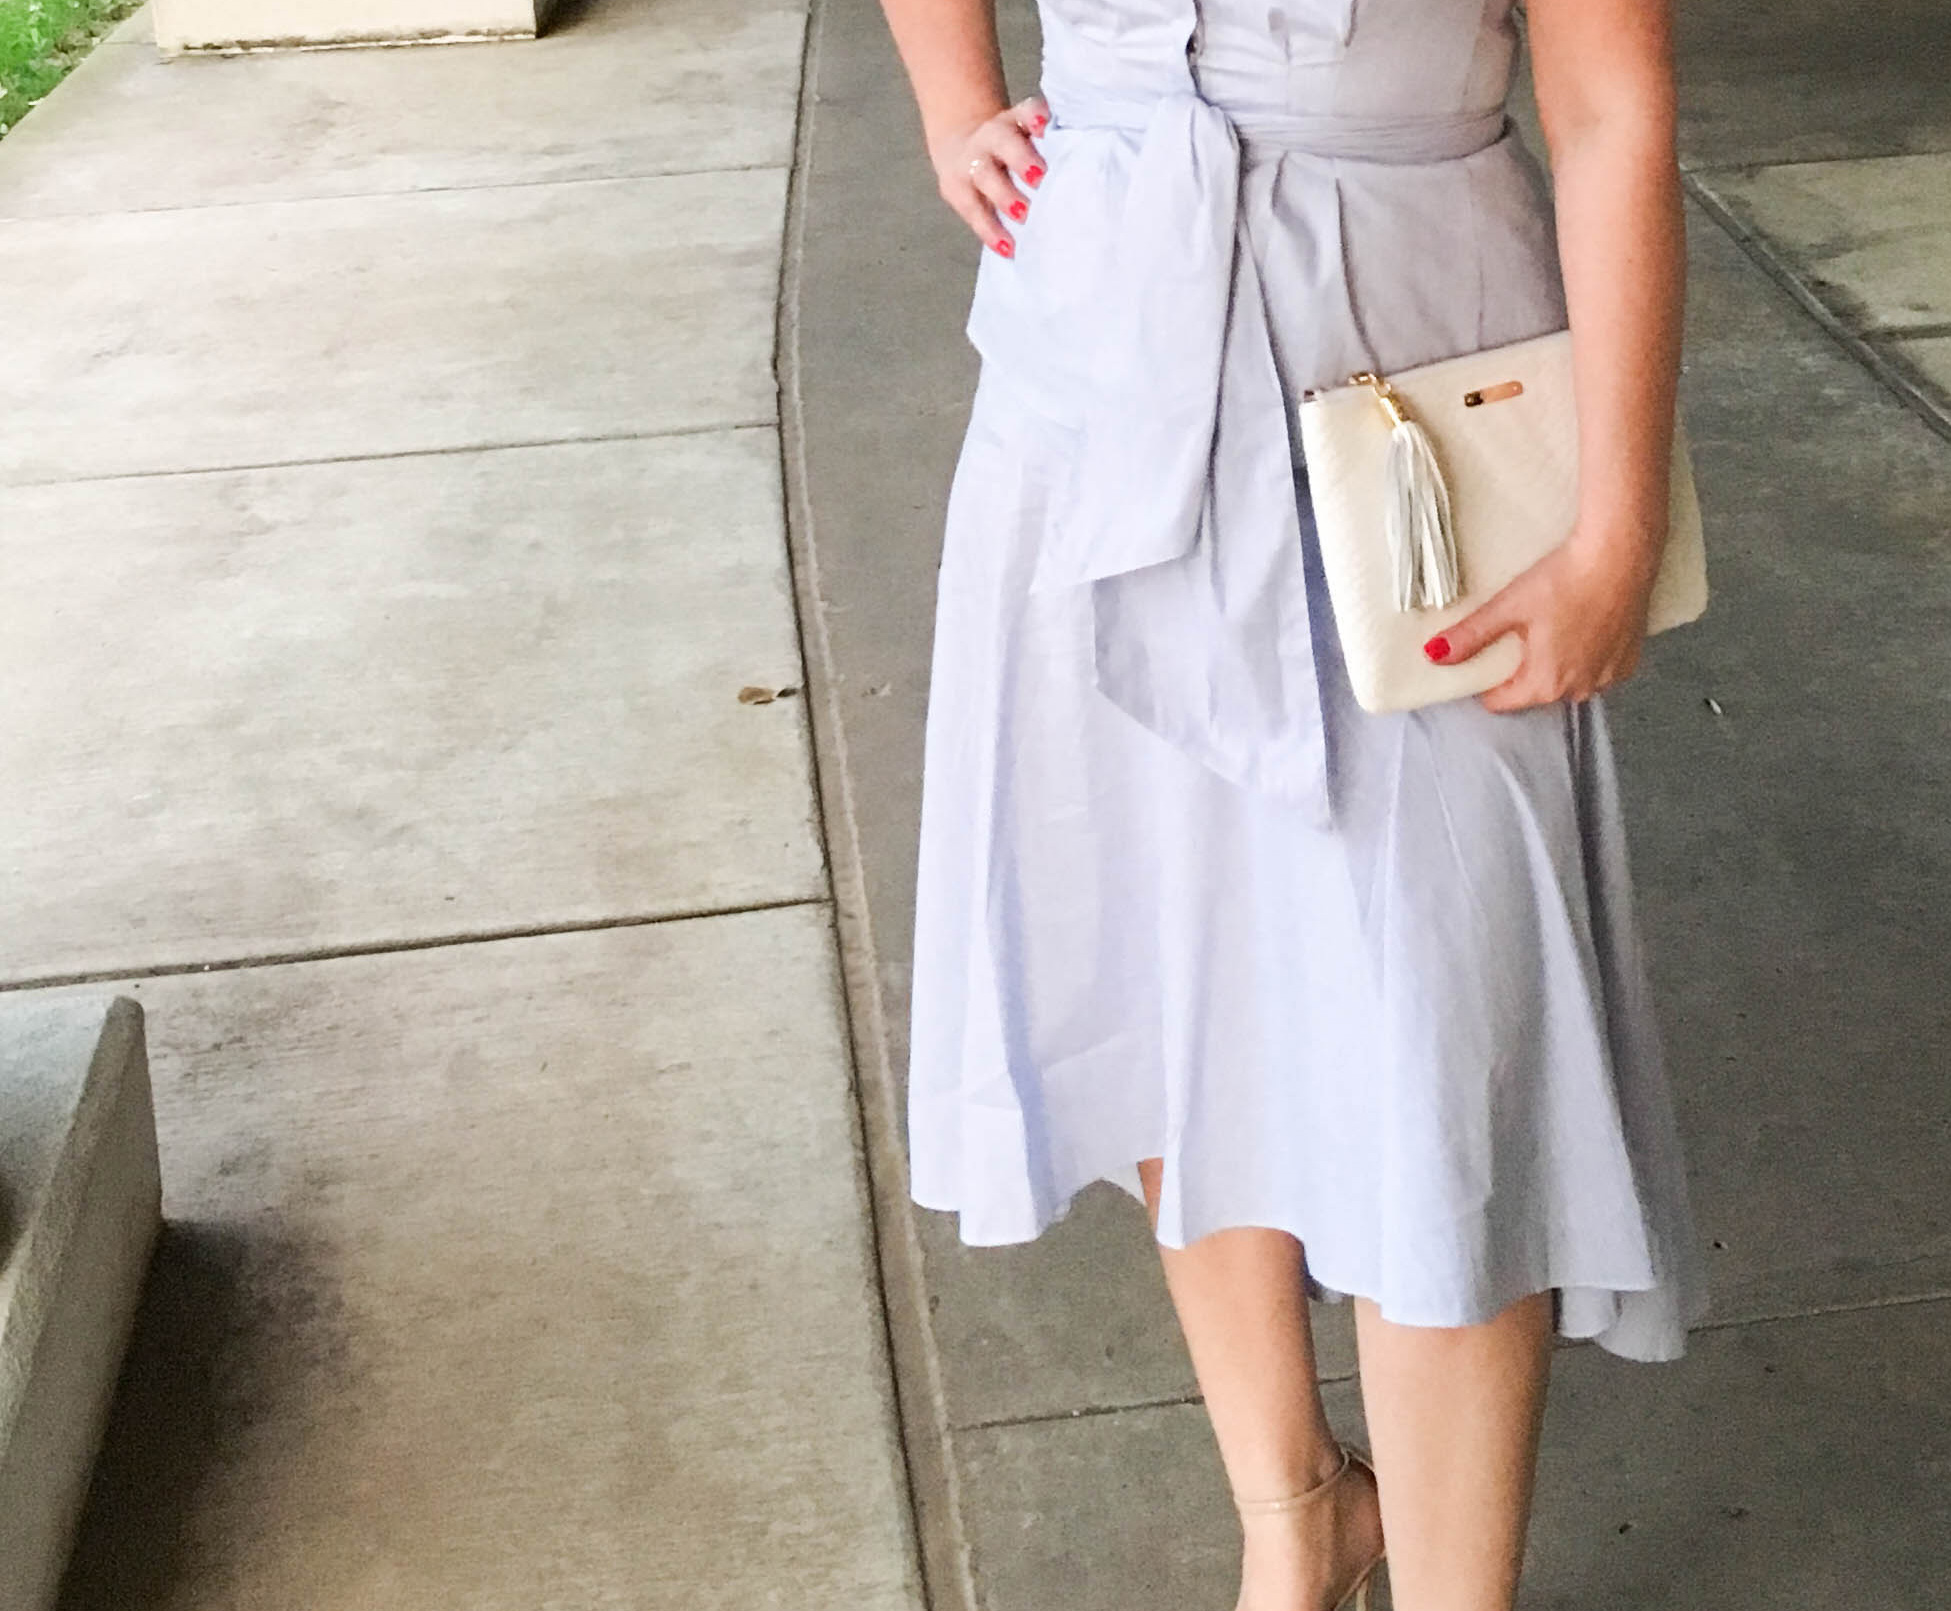 Olivia Palermo Bustier & Skirt 7